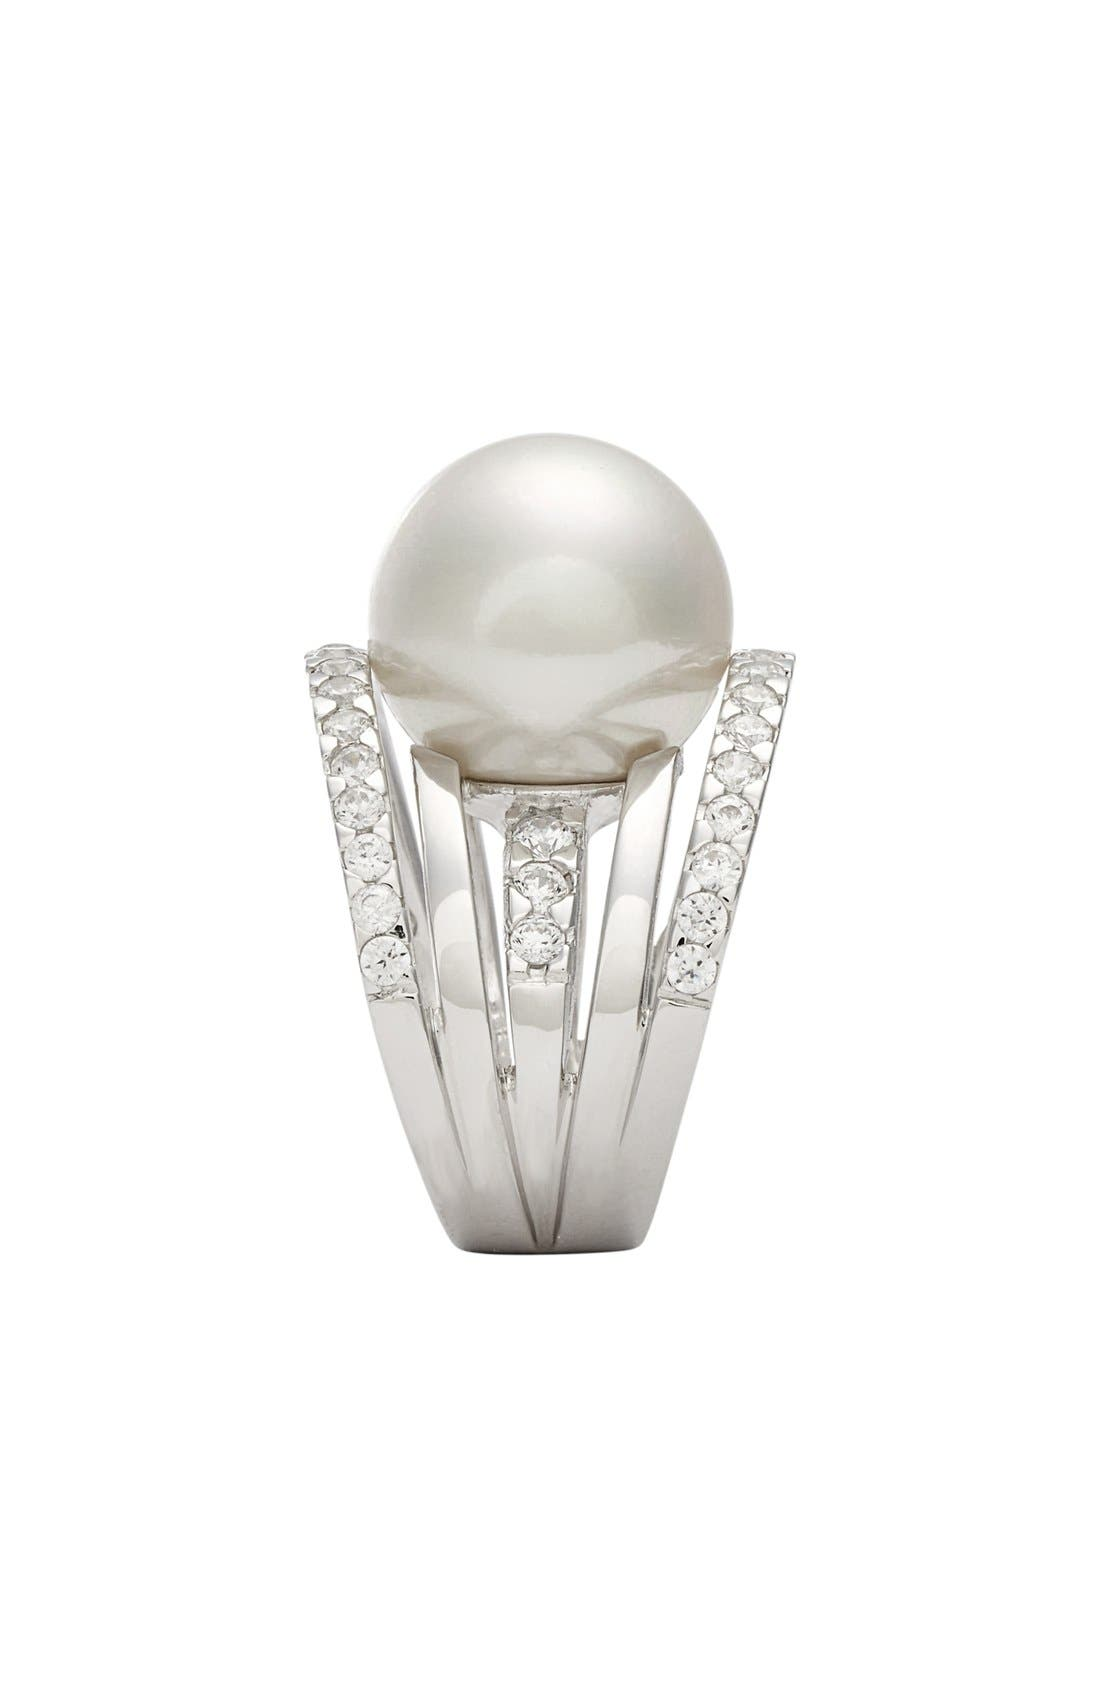 16mm Round Simulated Pearl Cubic Zirconia Ring,                             Alternate thumbnail 2, color,